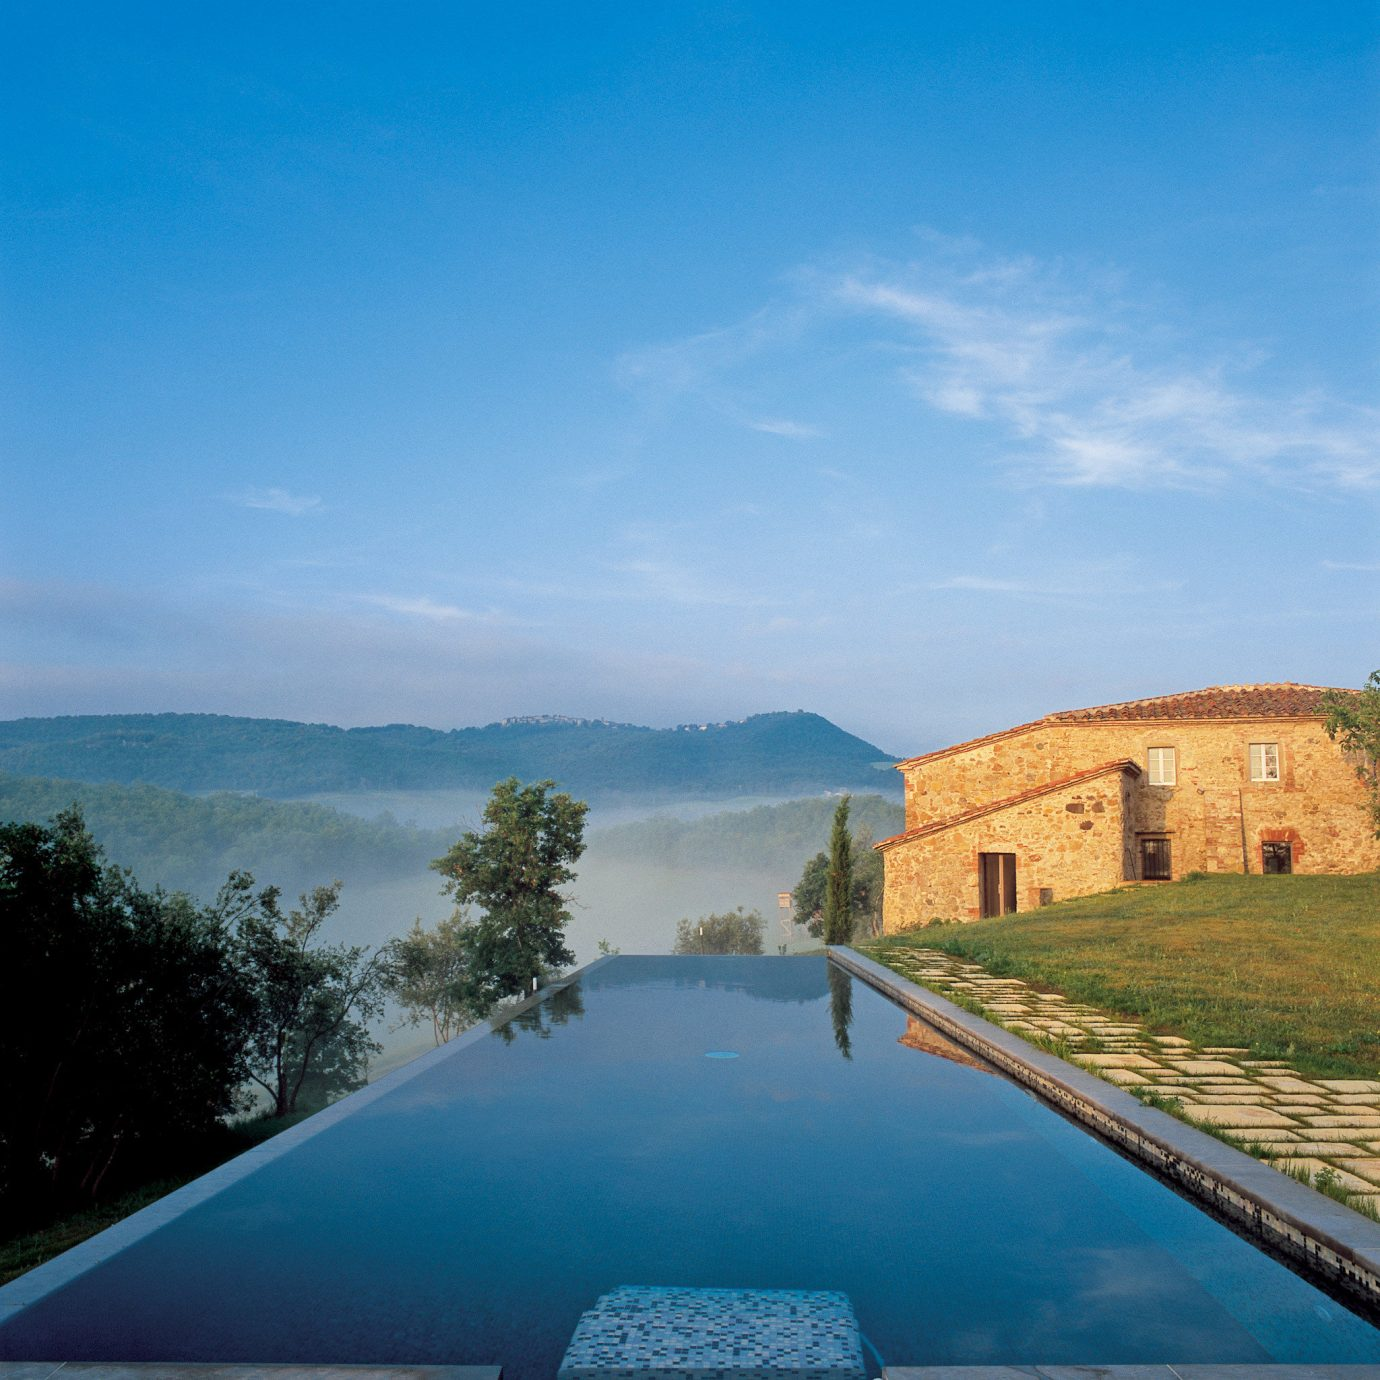 Grounds Health + Wellness Hotels Pool Romance Scenic views Spa Retreats sky outdoor water vacation Sea swimming pool reservoir reflection River Lake estate hill landscape mountain